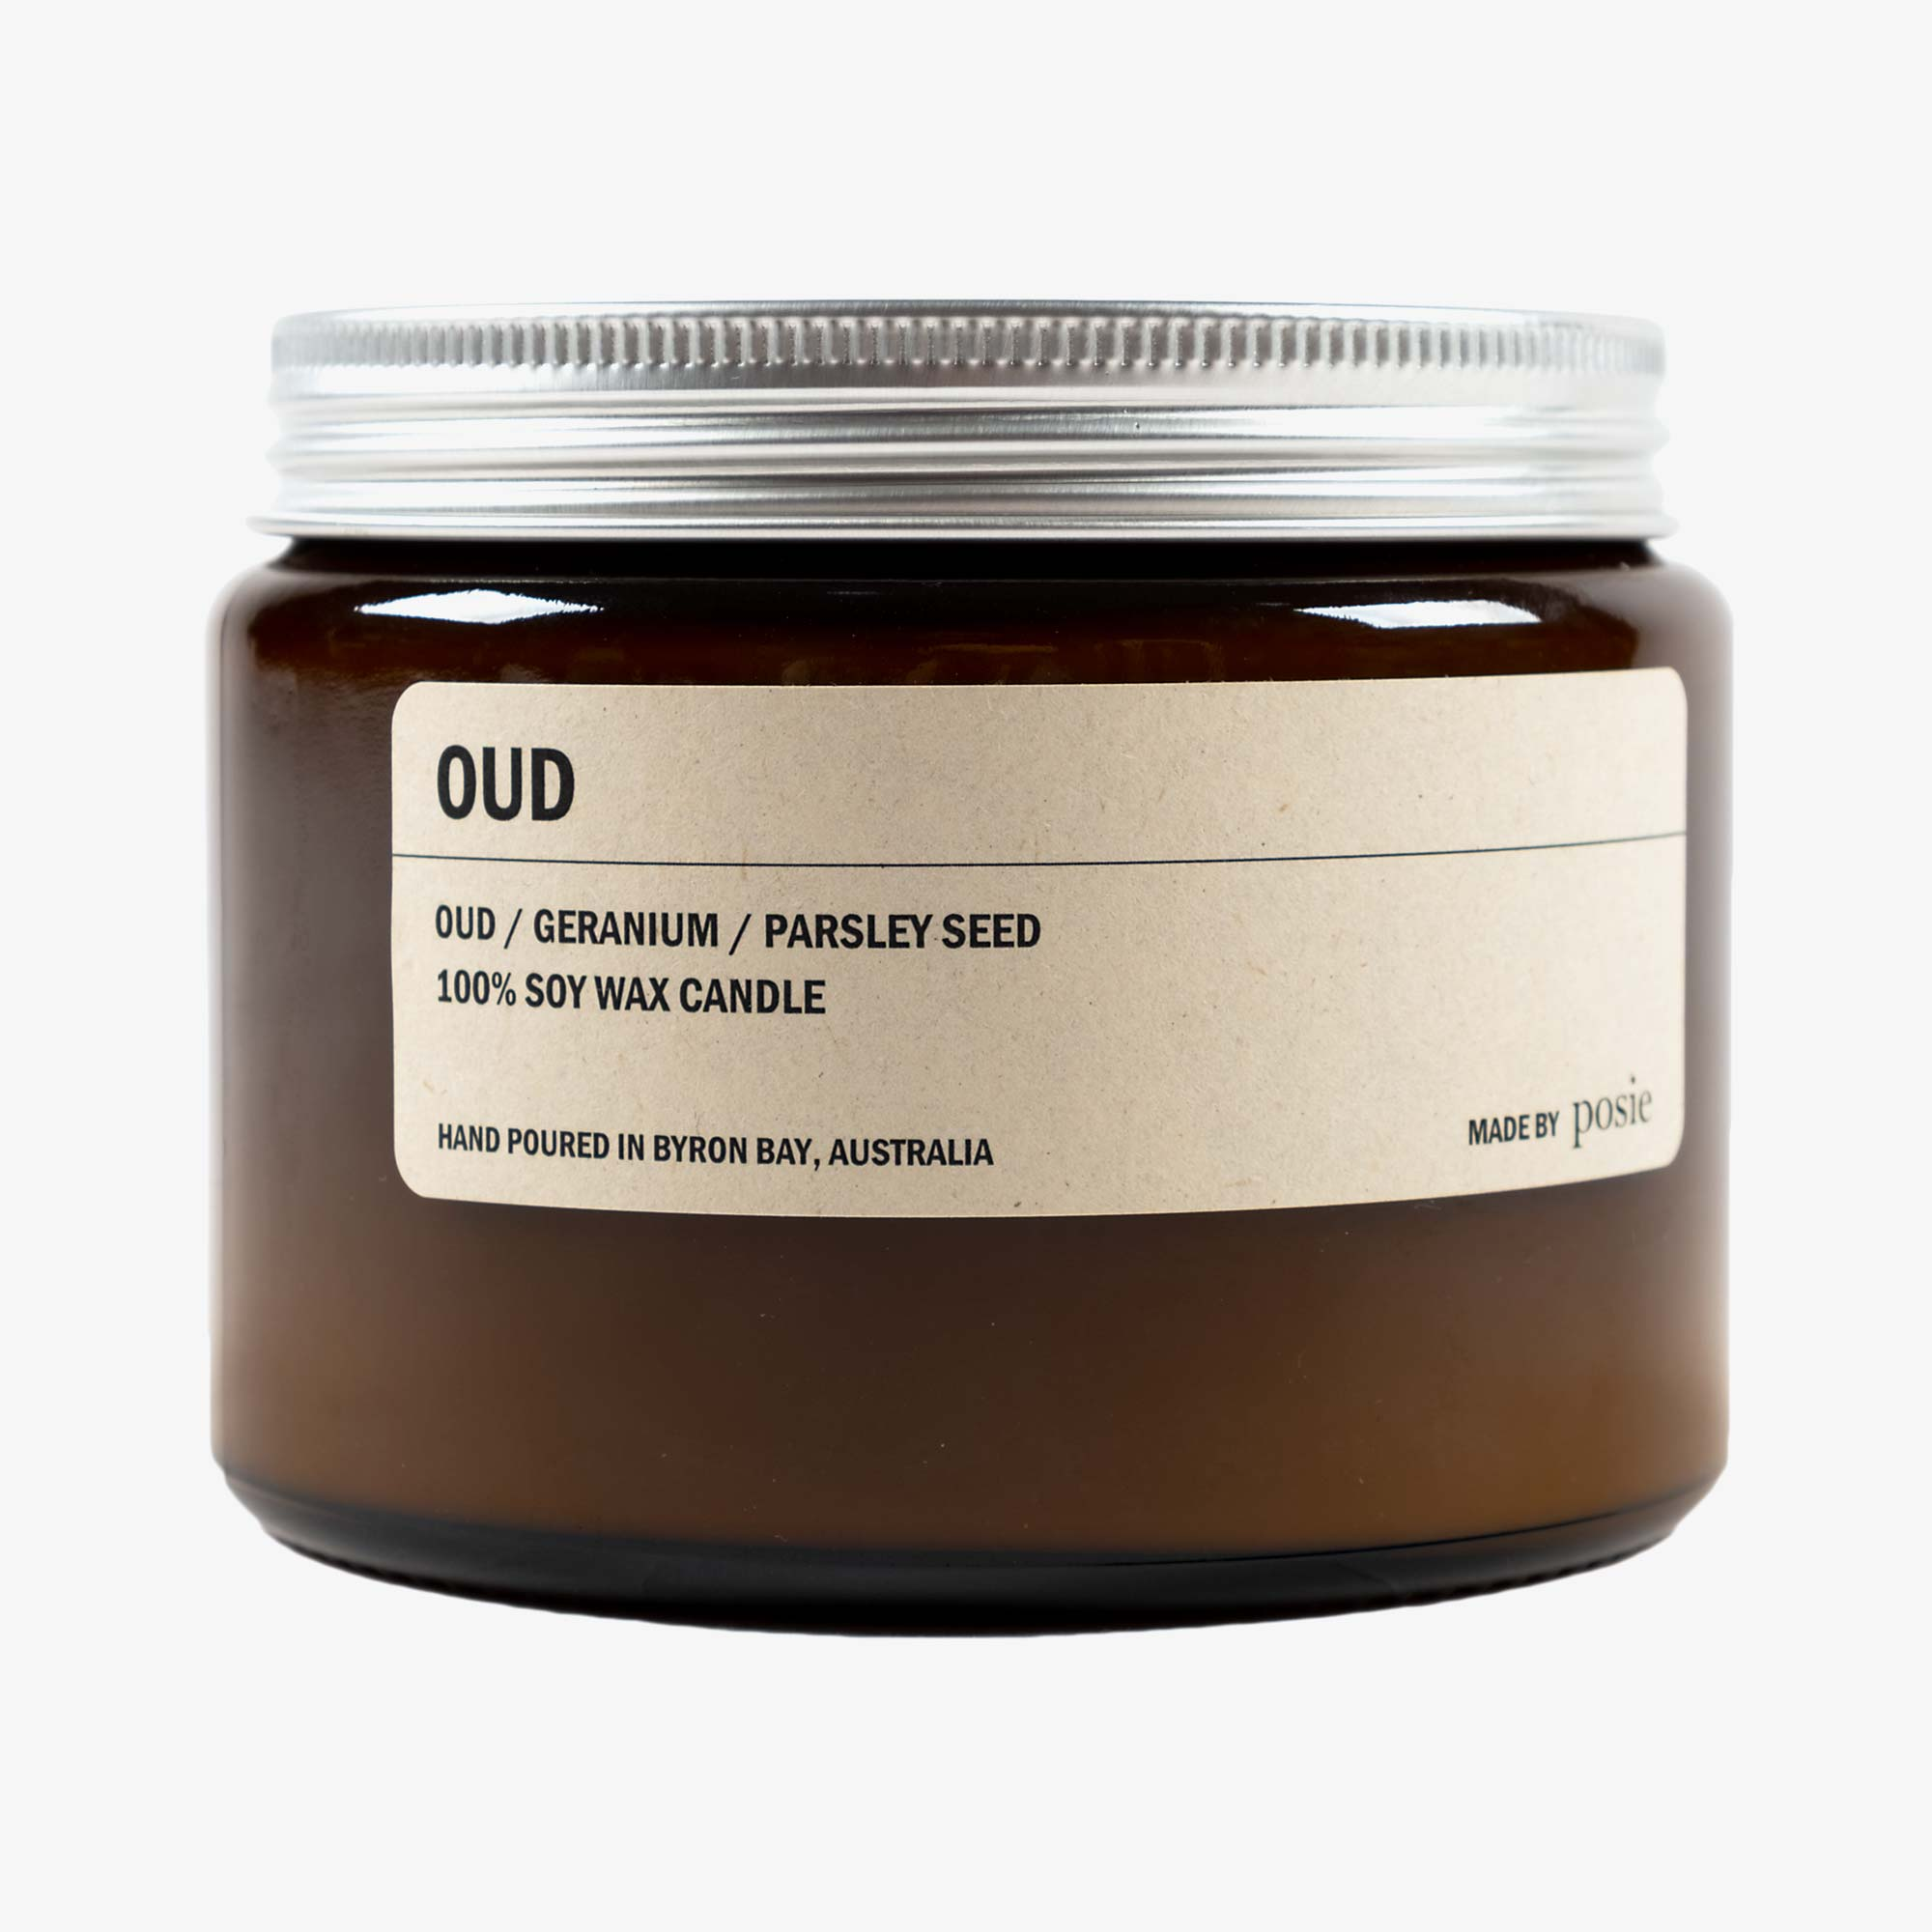 Posie Oud 500g Candle - Amber 1